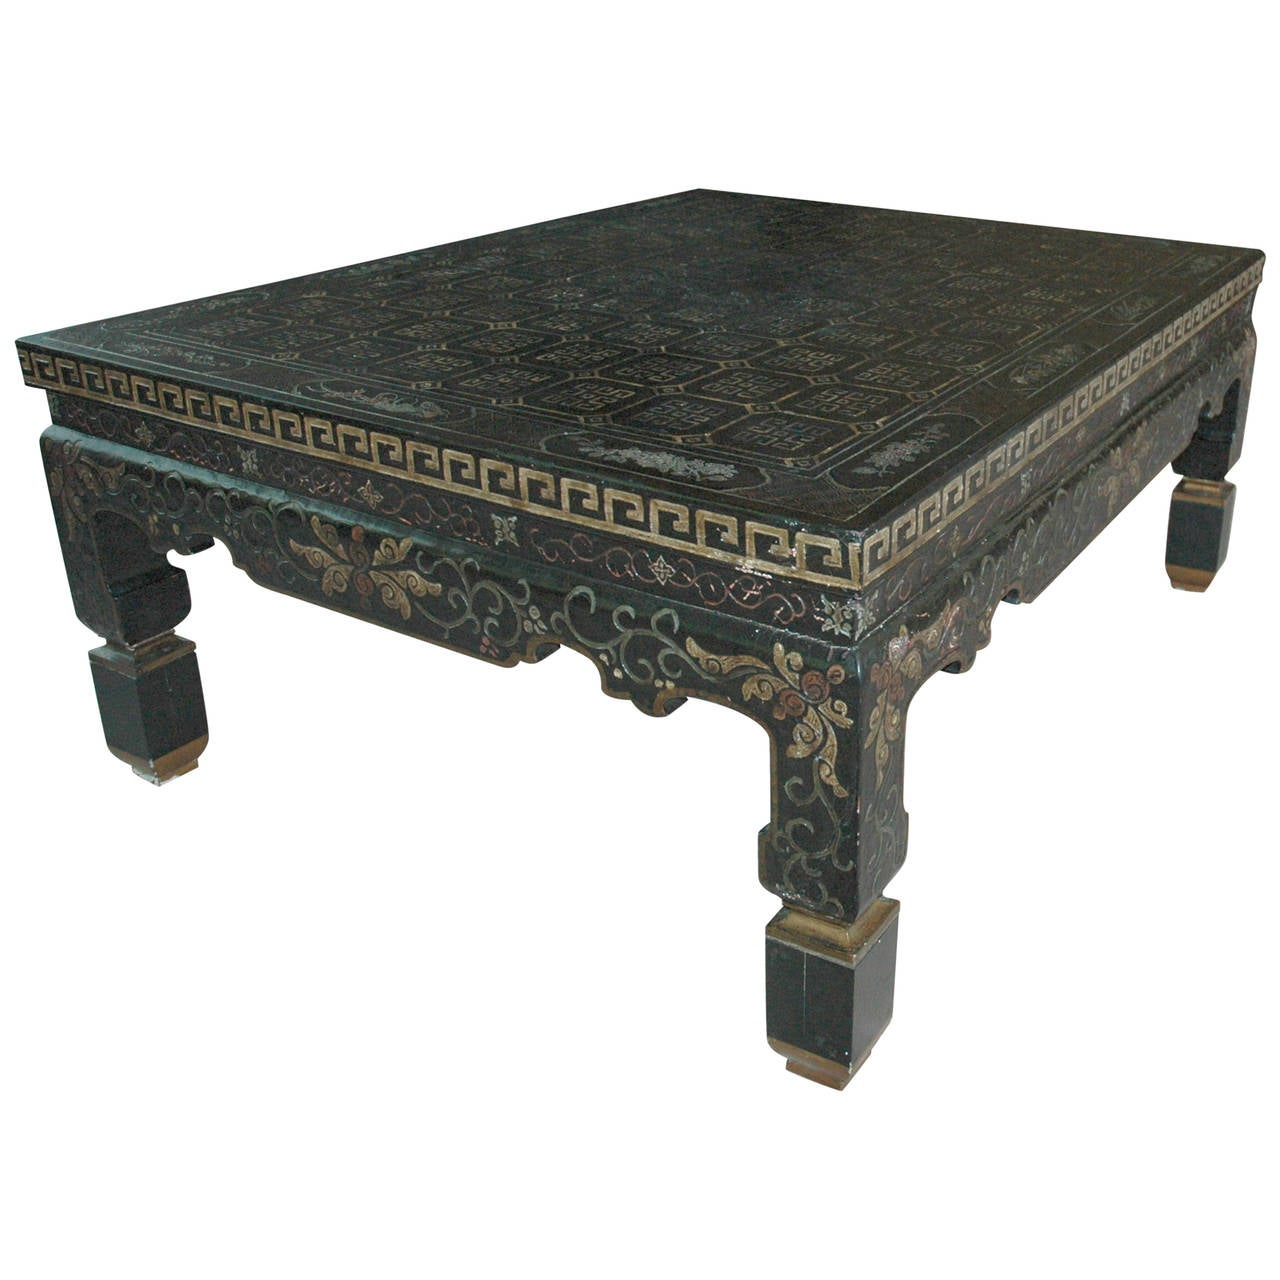 Baker chinoiserie black lacquered coffee table with greek key decoration at 1stdibs Baker coffee table